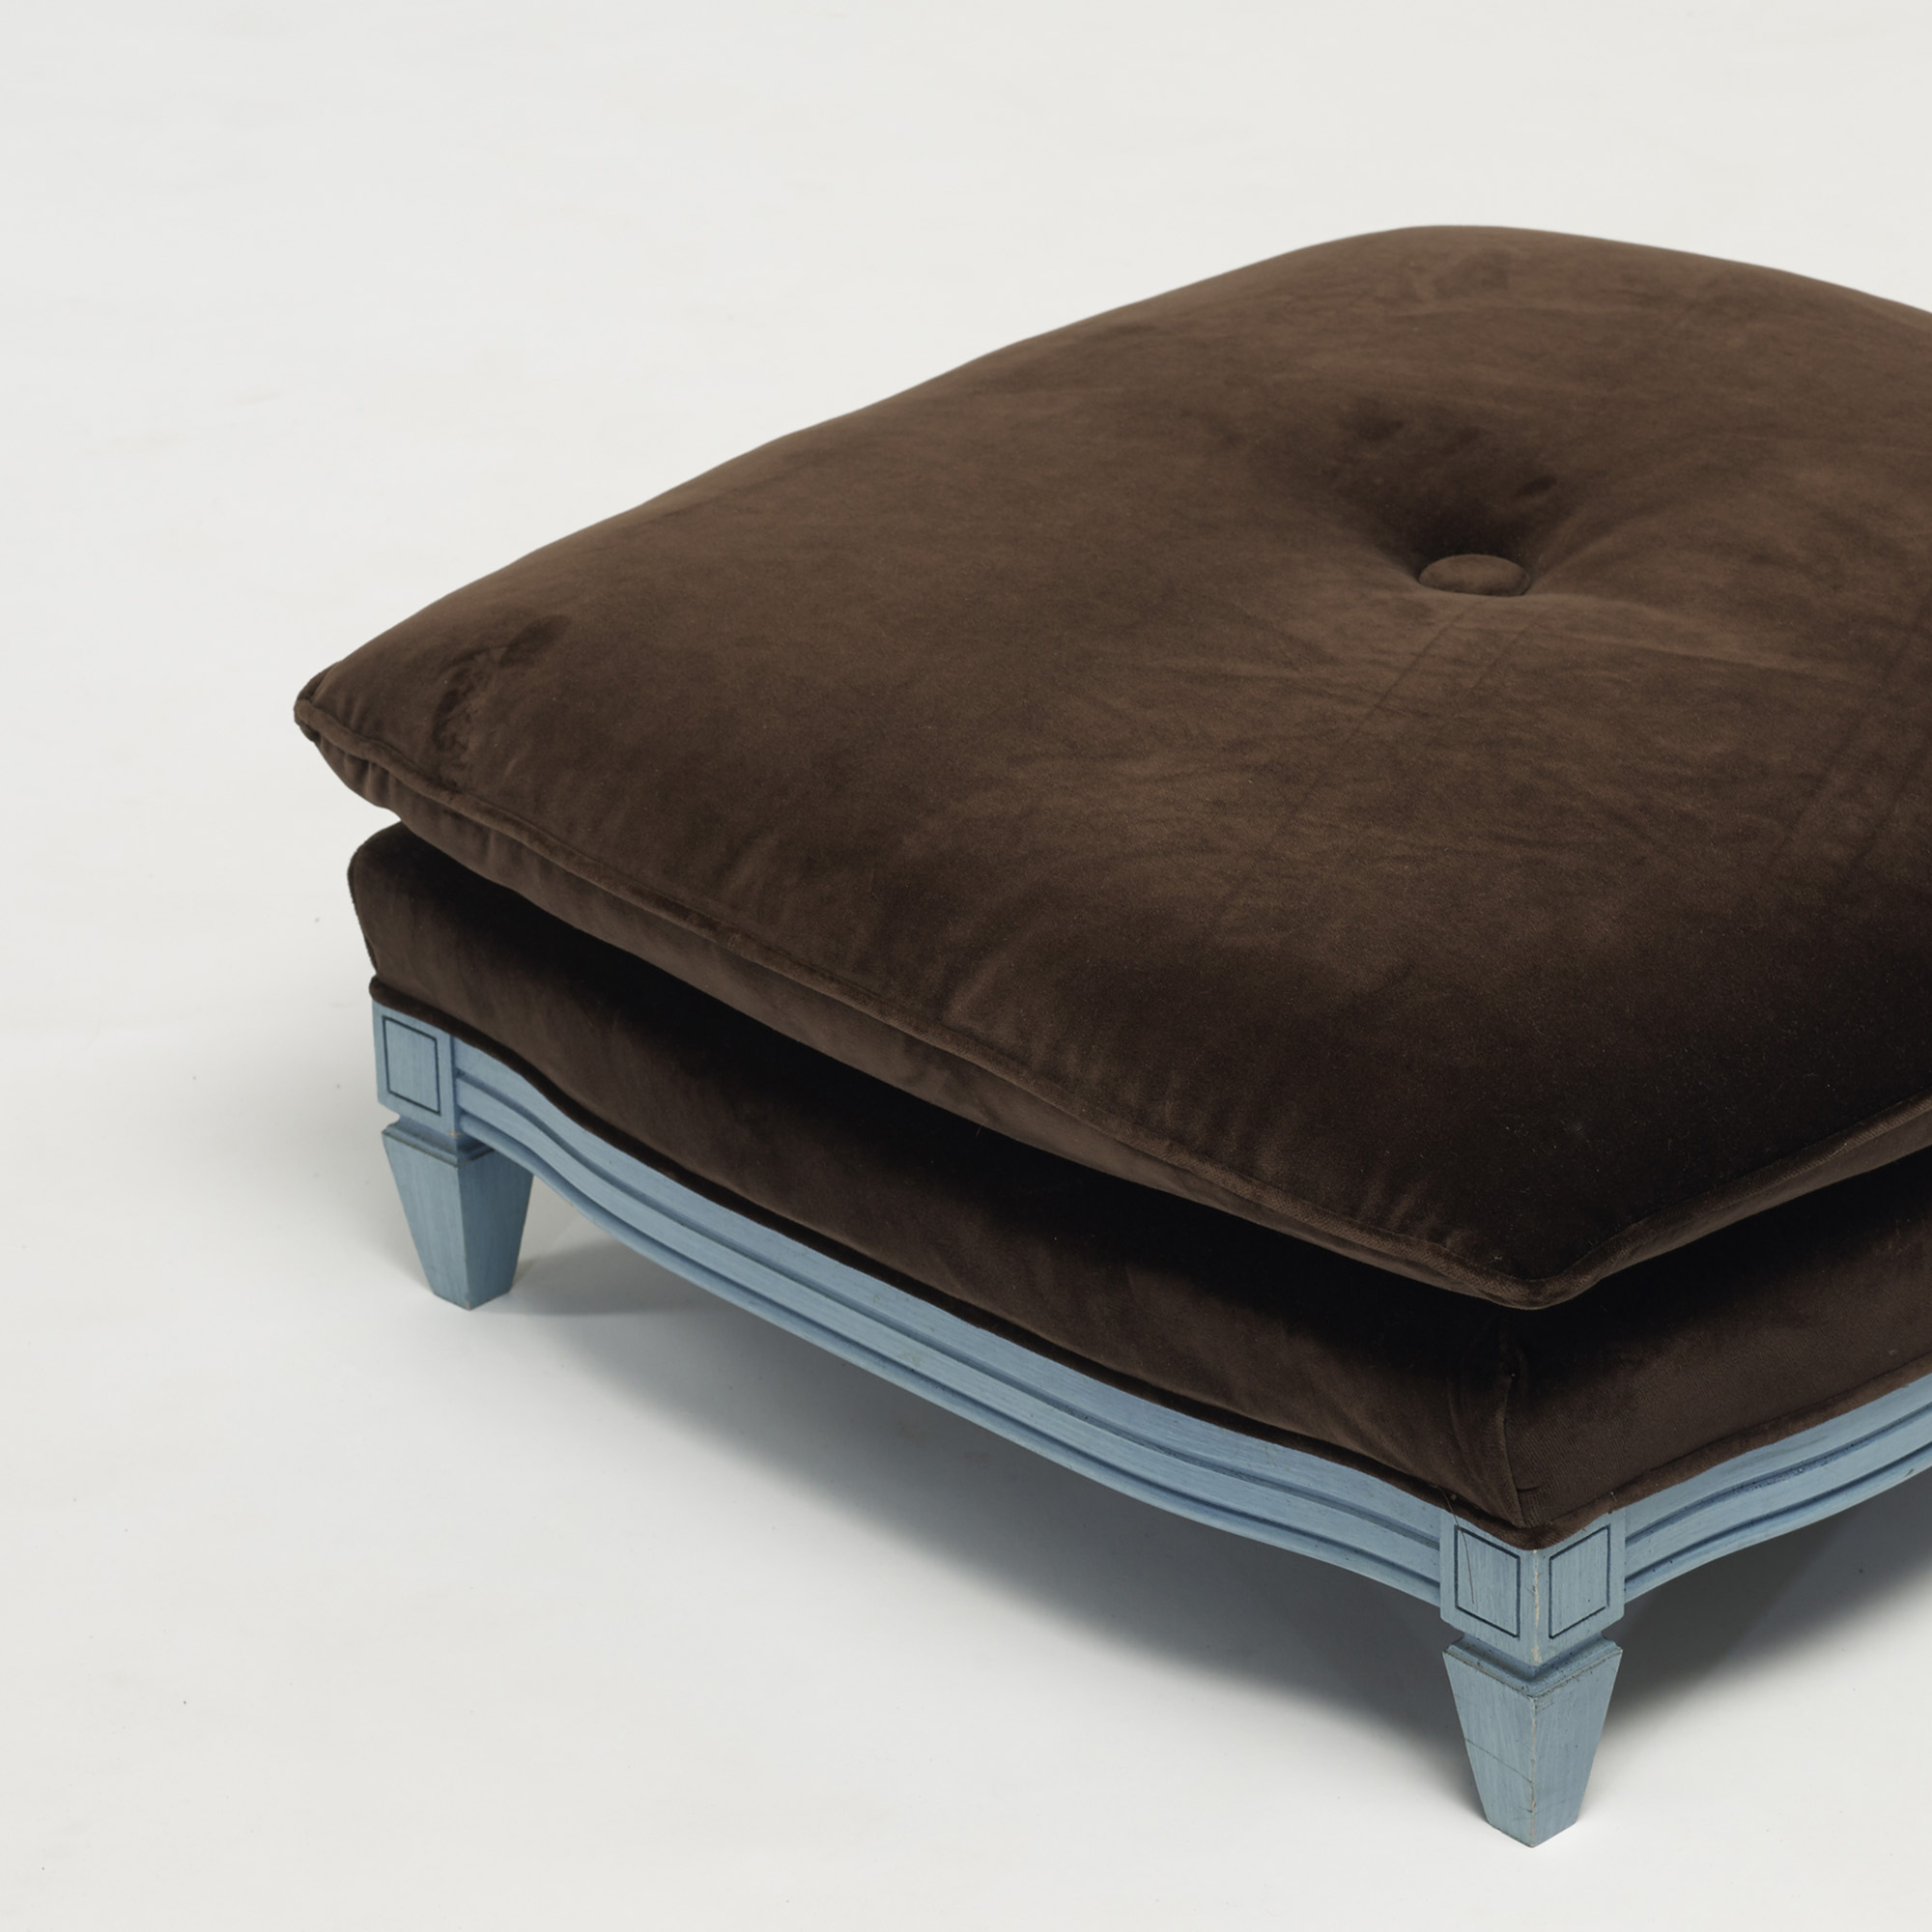 216: Contemporary / ottomans, set of three (3 of 3)